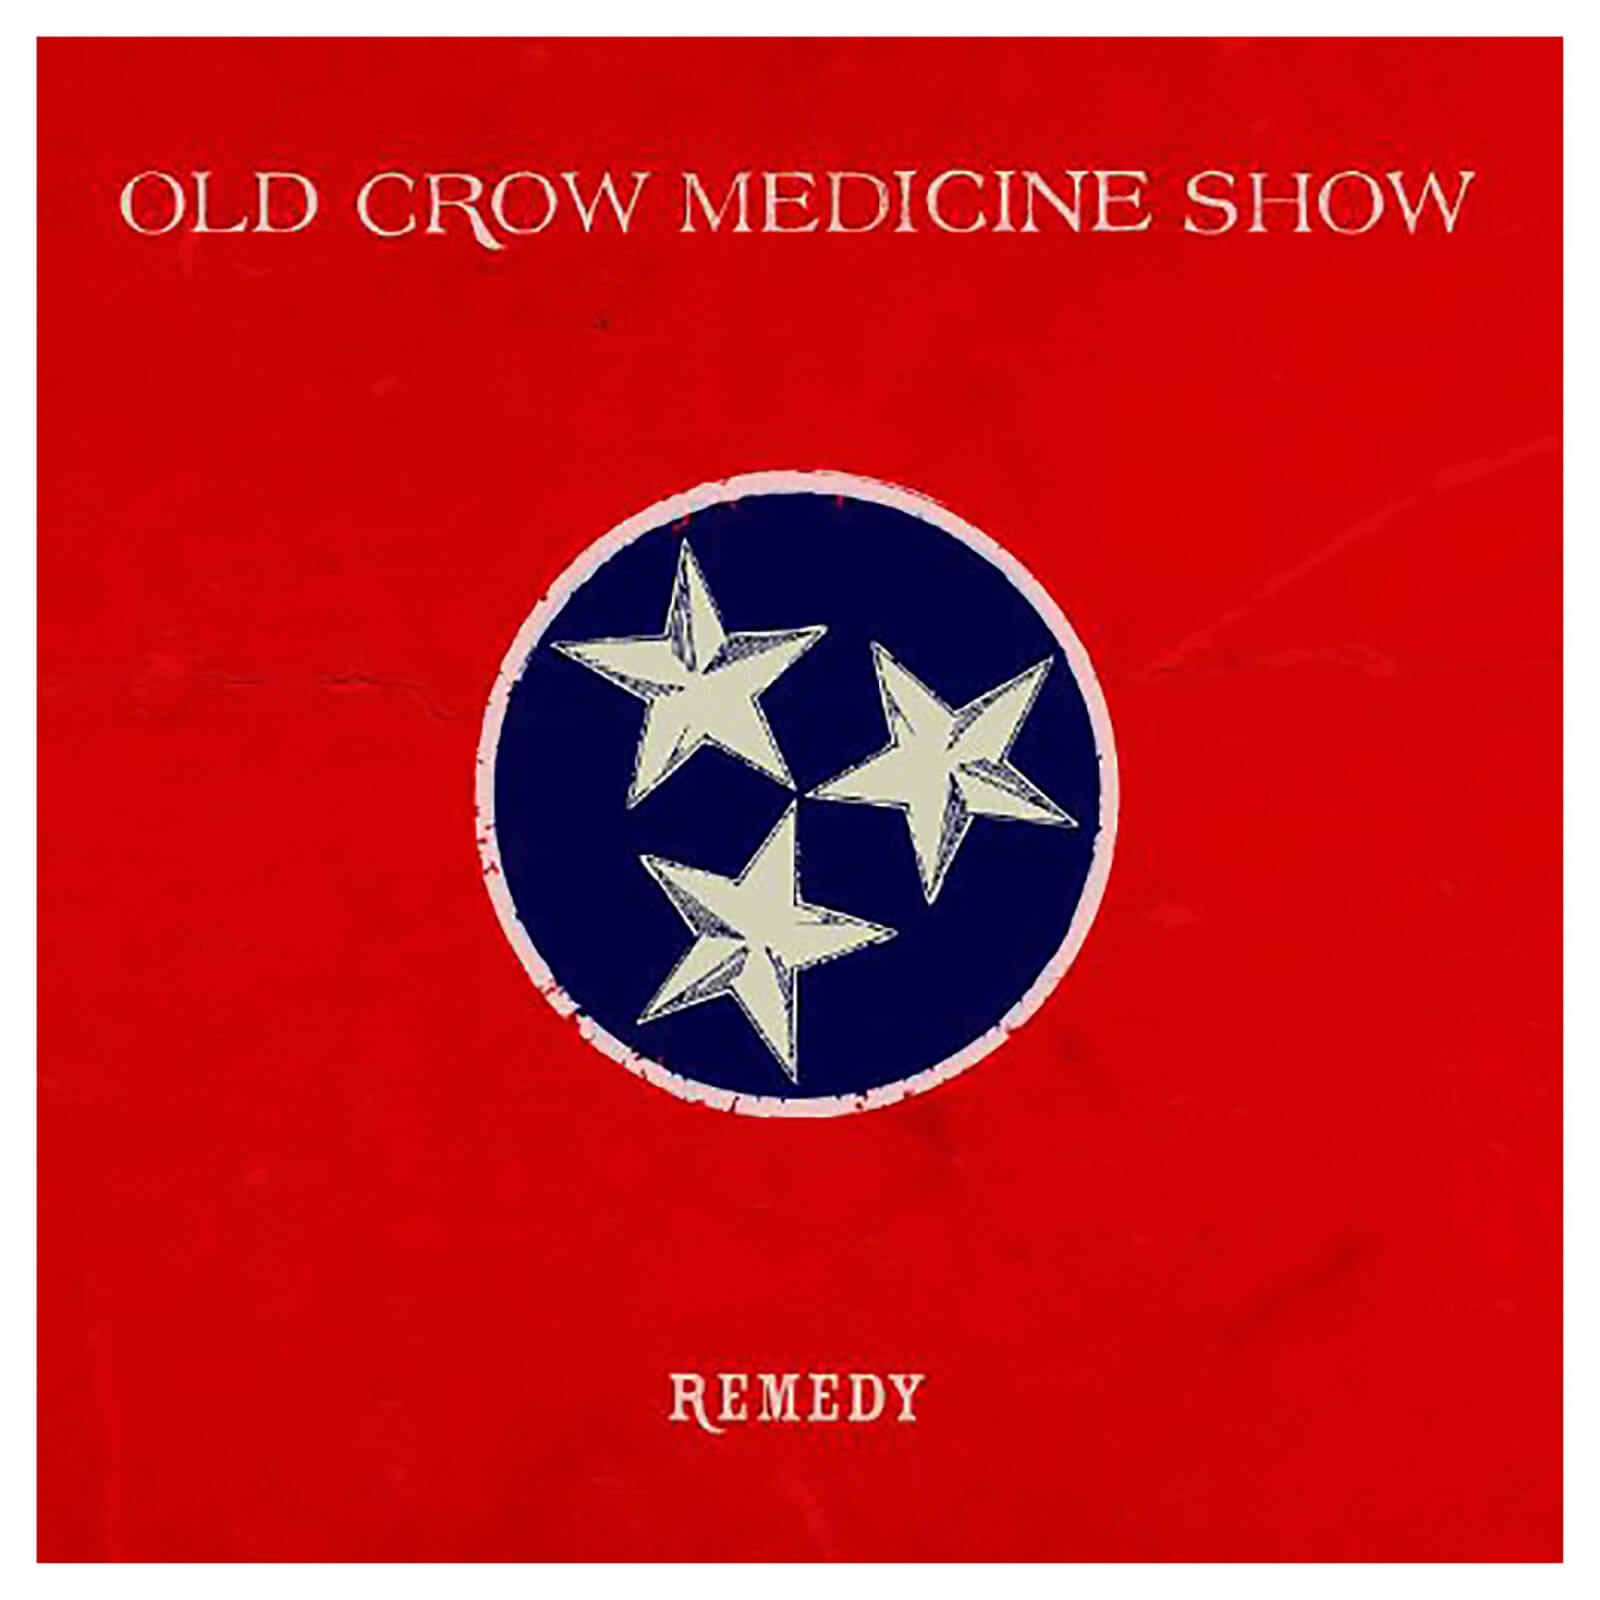 Old Crow Medicine Show - Remedy - Vinyl